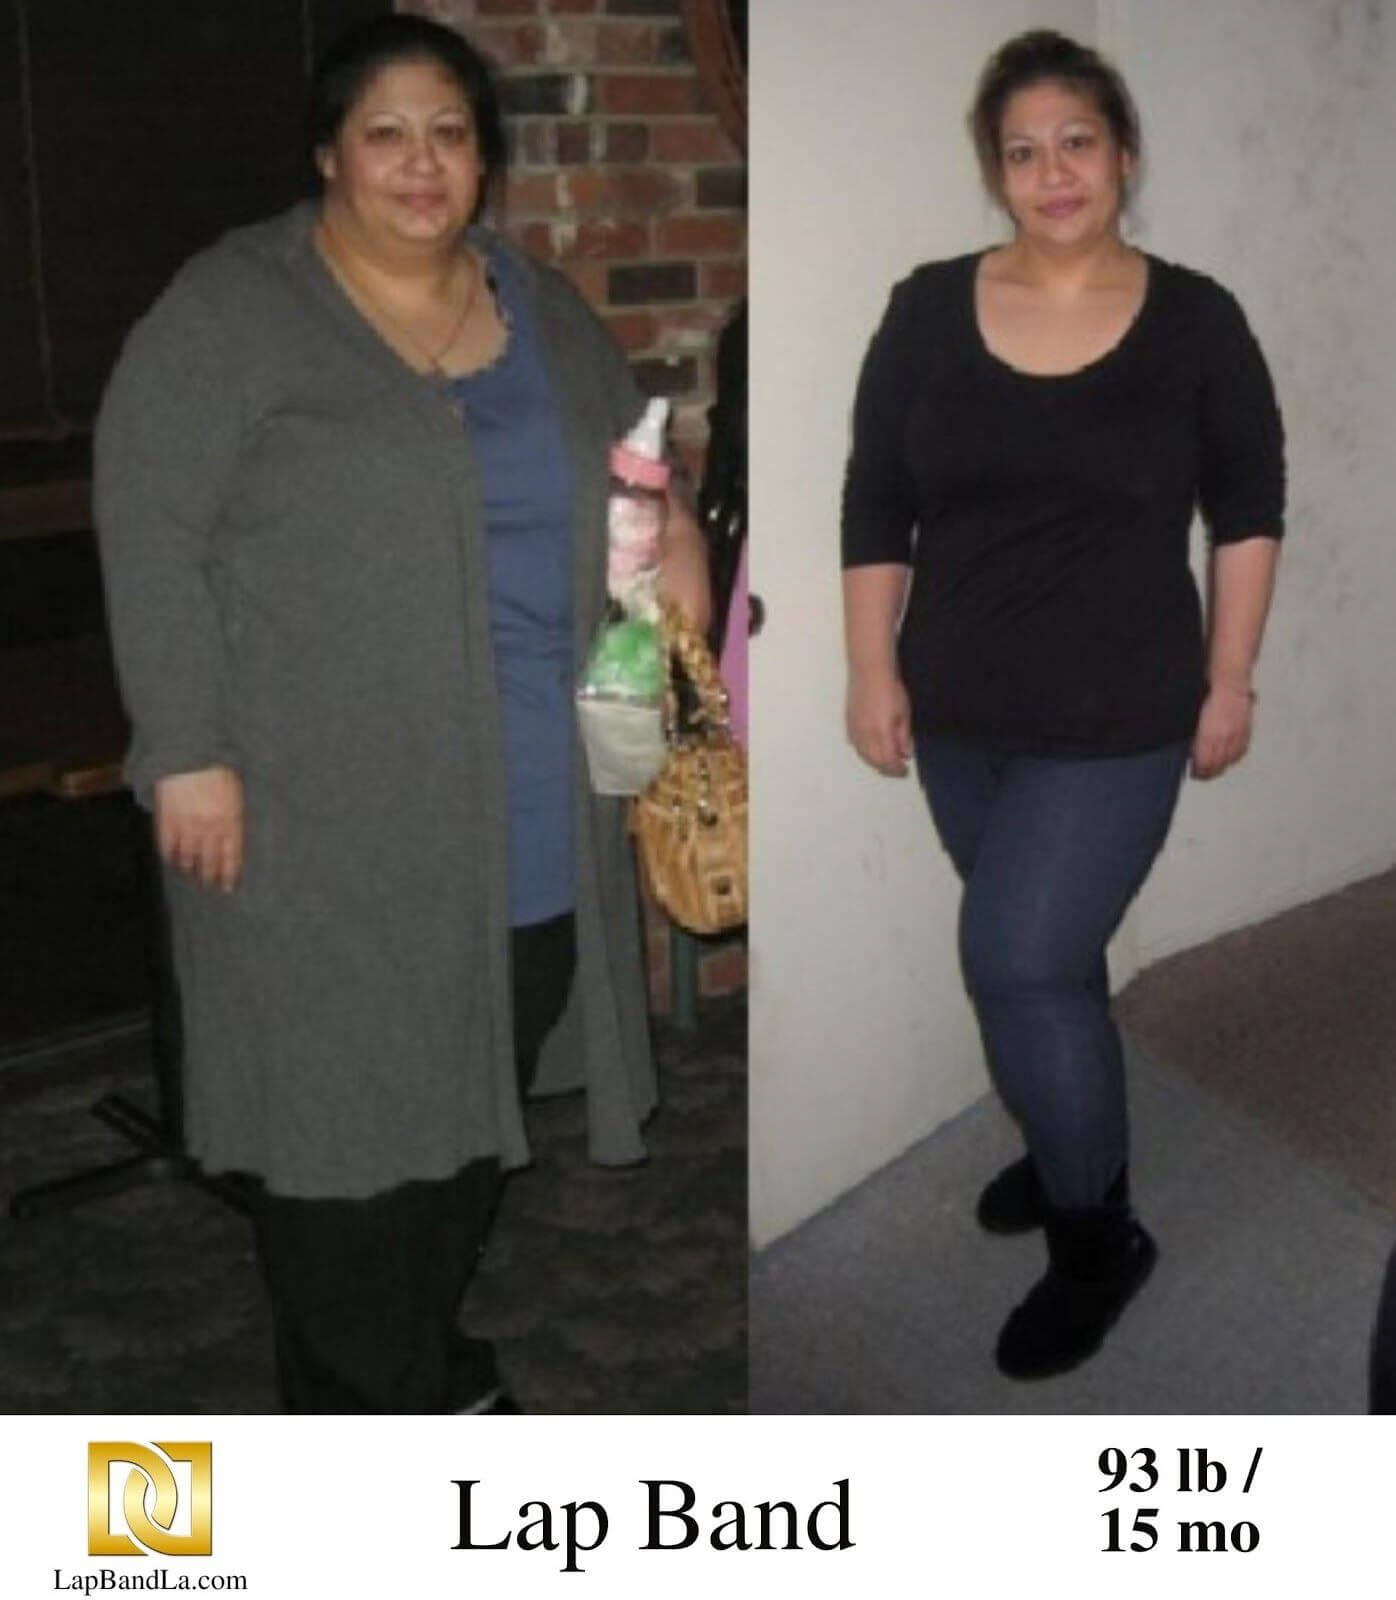 ≪H1 Class=&Quot;Hide_09&Quot;≫Bariatric Surgery ≪Br≫Before And After - Anita S.≪/H1≫   Success_Storie   The Weight Loss Surgery Center Of Los Angeles   Dr. David Davtyan